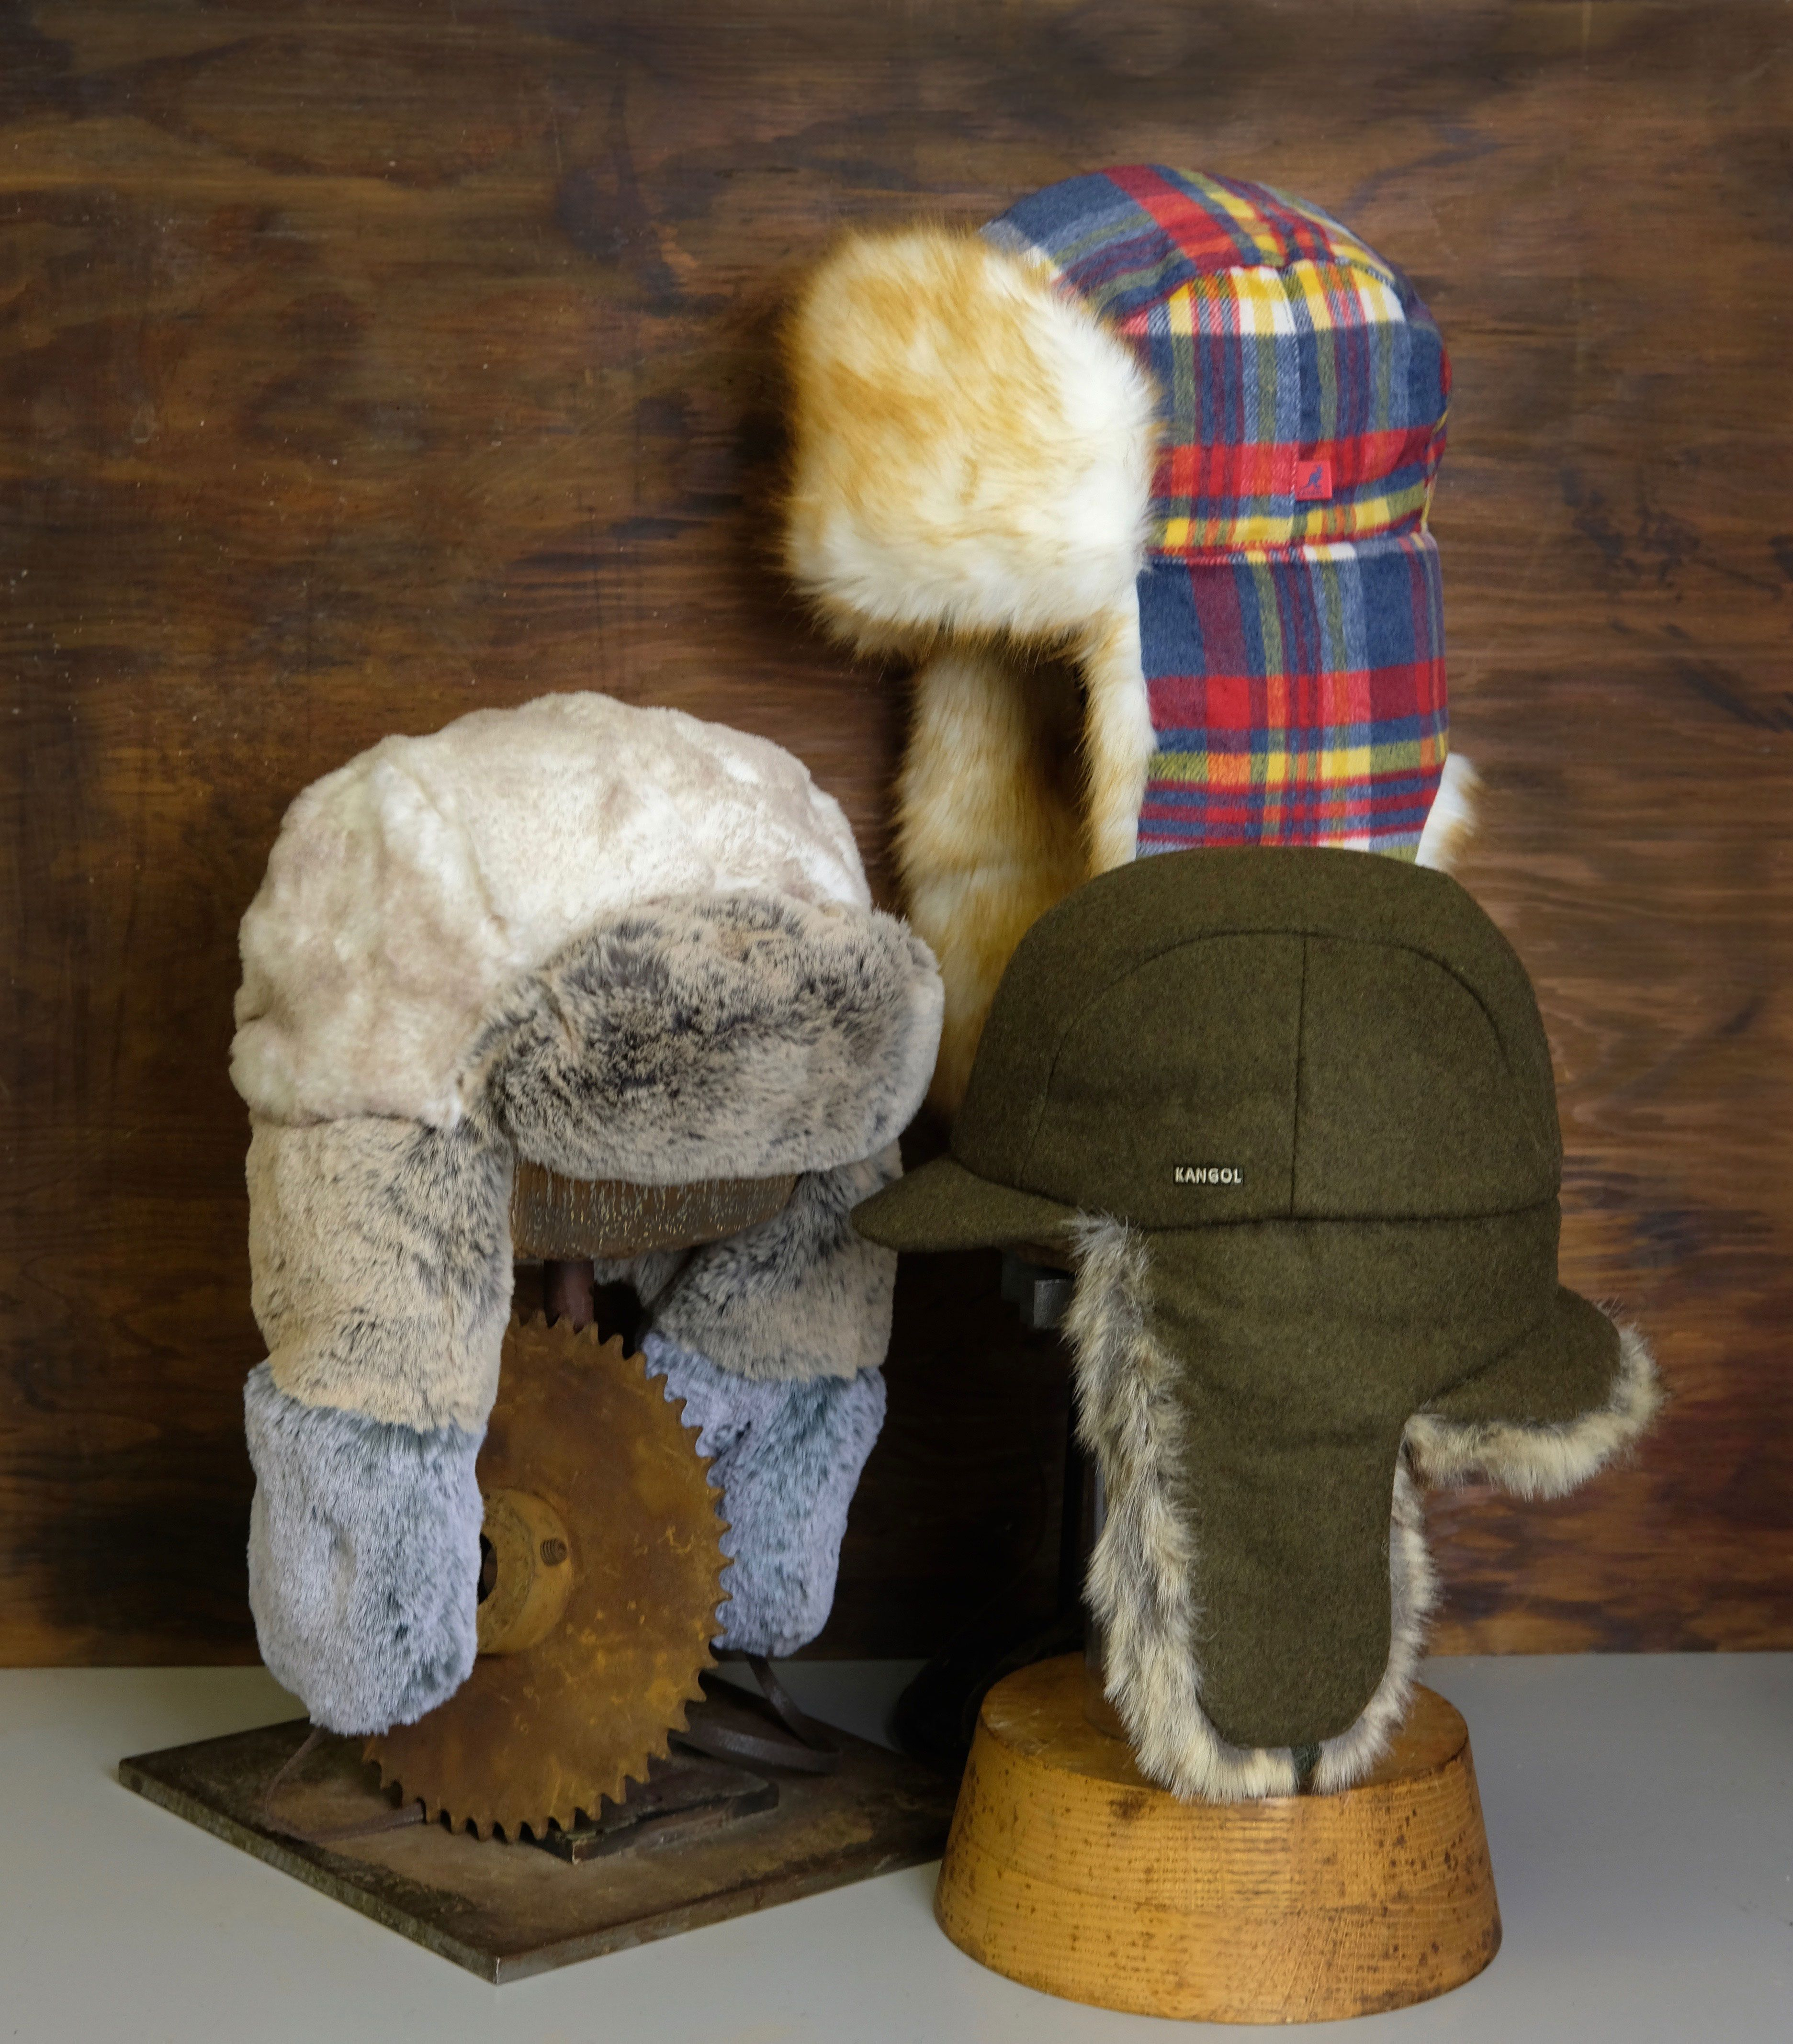 You re going to want a trapper before winter gets here to keep your head  warm and ears covered. We offer a huge assortment of both wool and leather  trappers ... d1a577aaebf